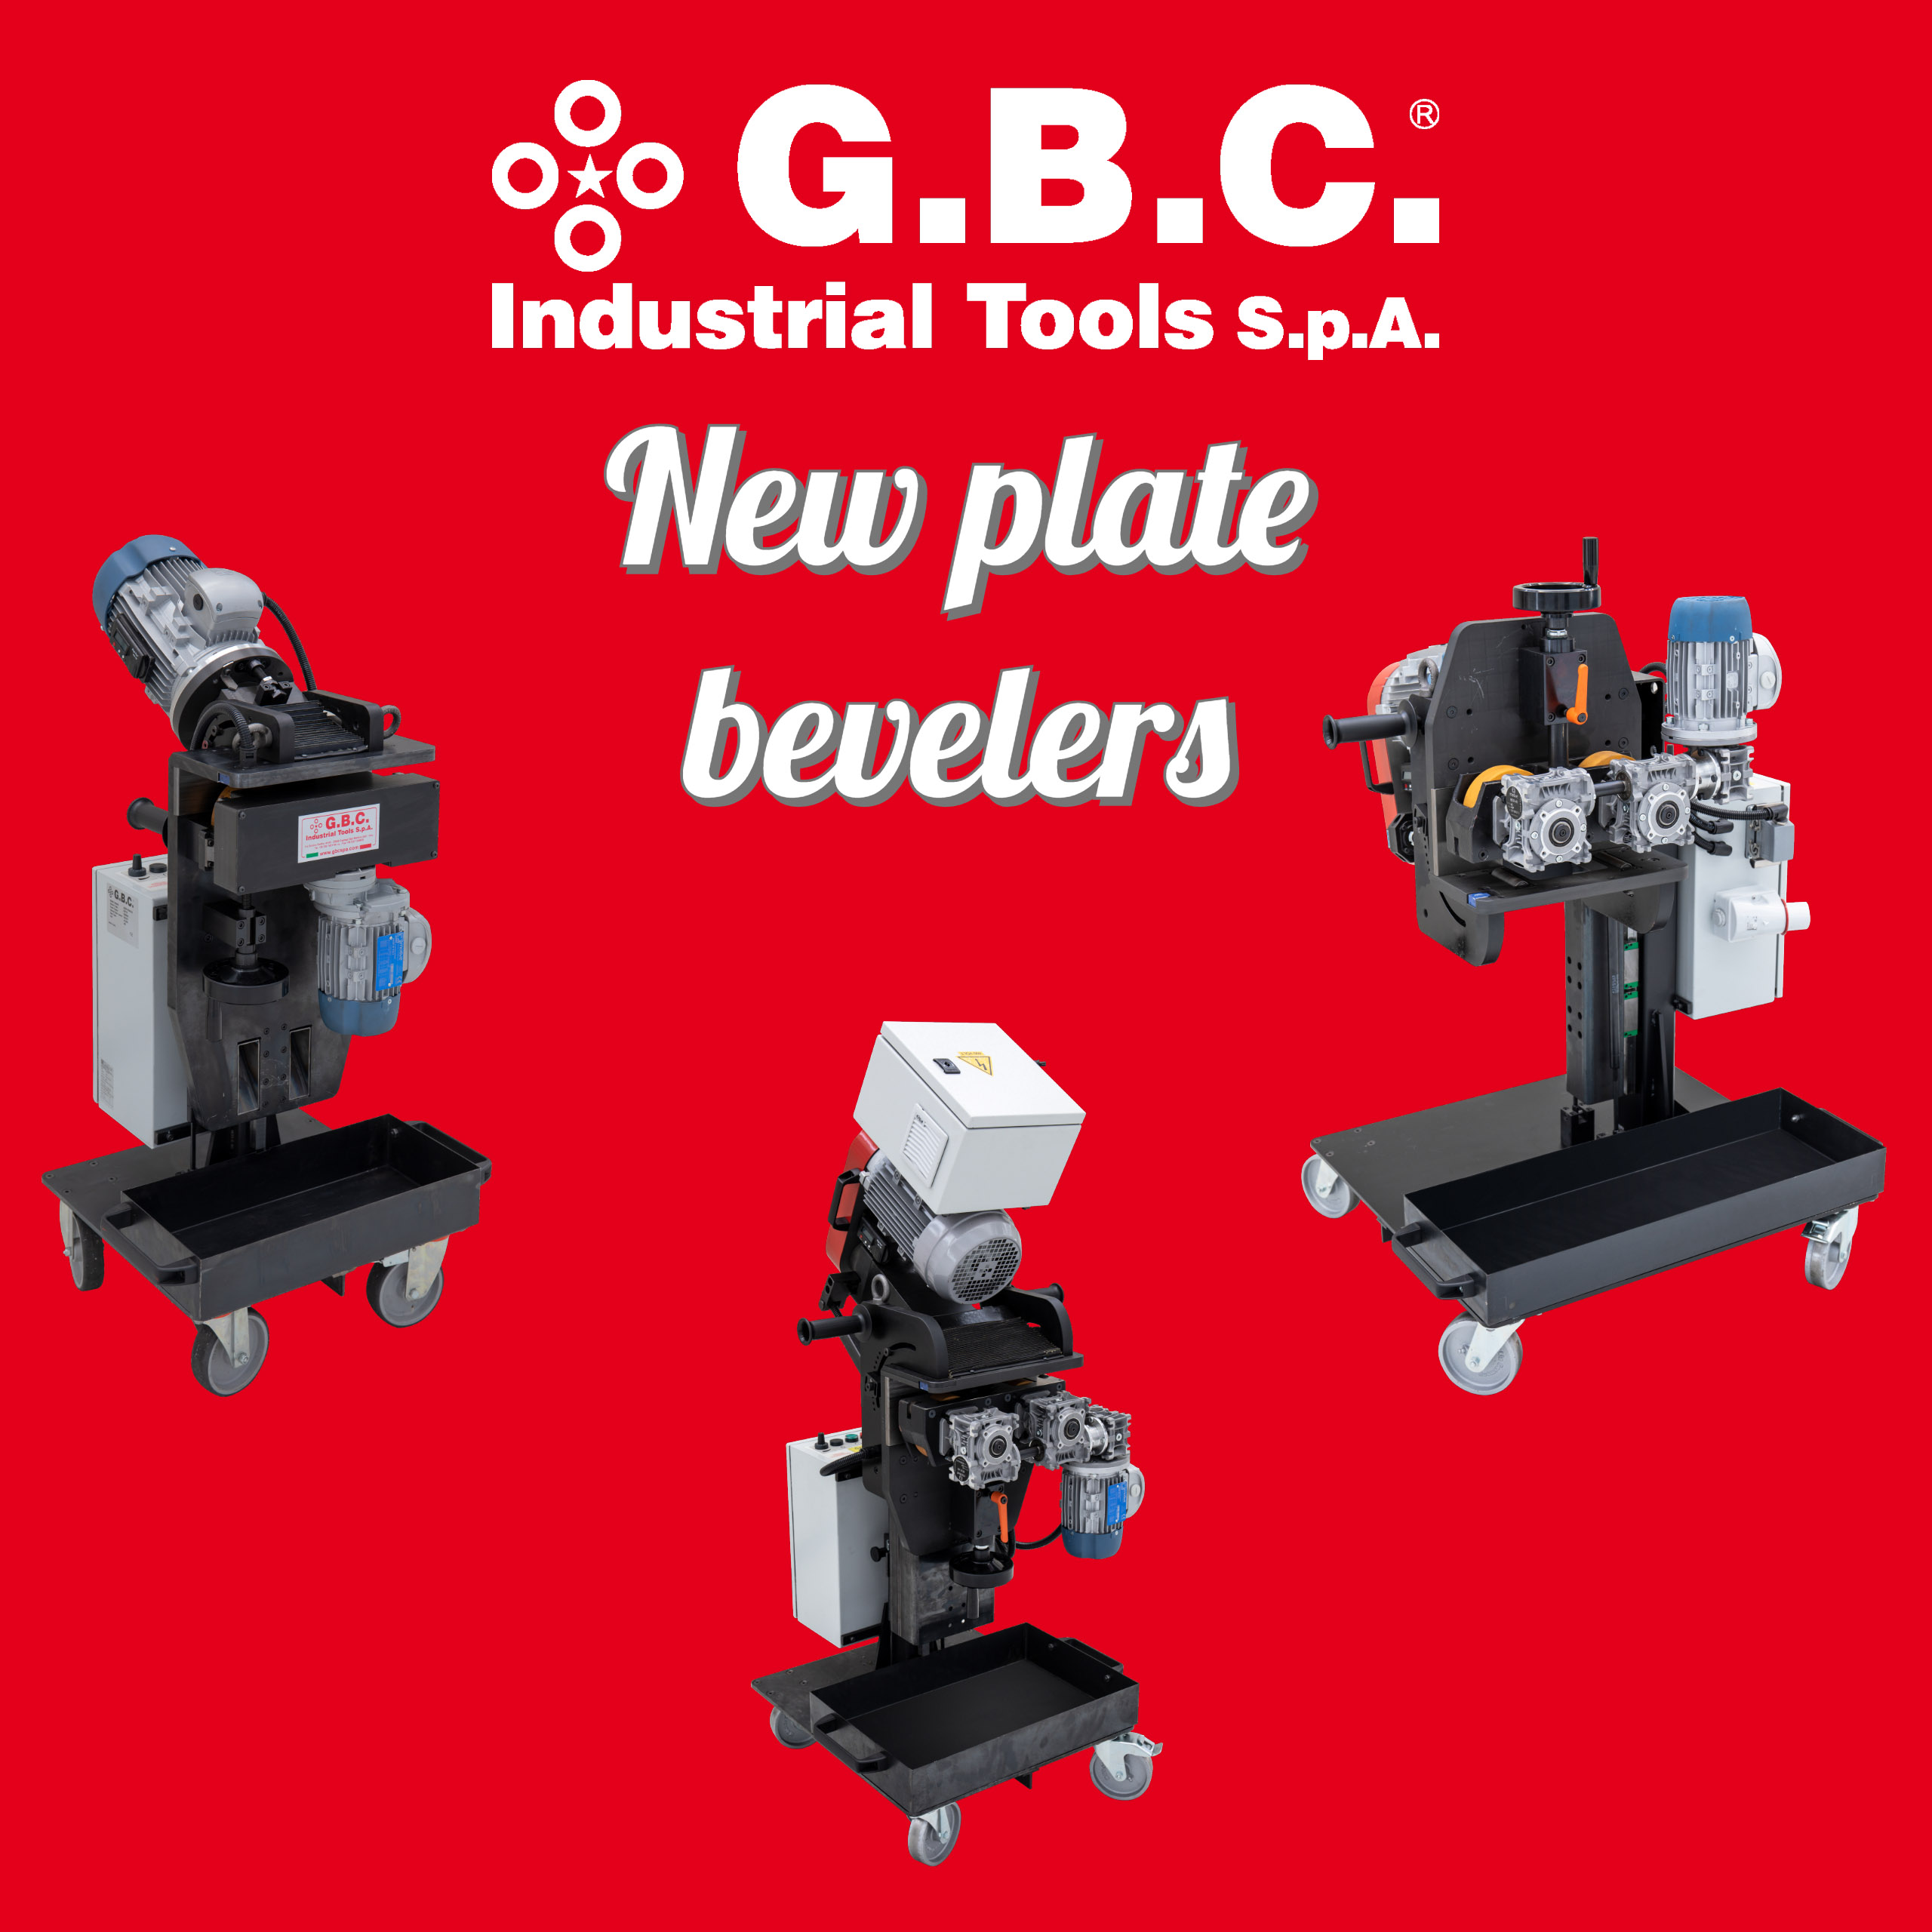 new plate bevelers